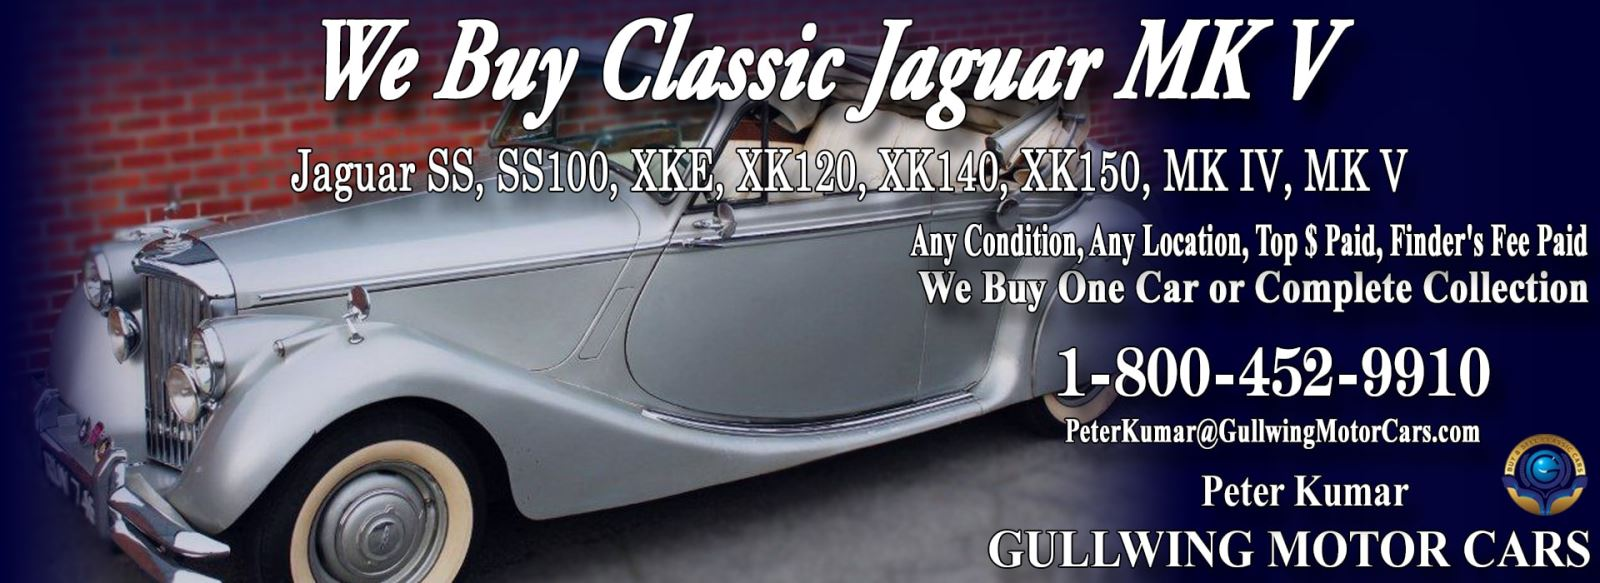 Classic Jaguar for sale, we buy vintage Jaguar Mark V. Call Peter Kumar. Gullwing Motor